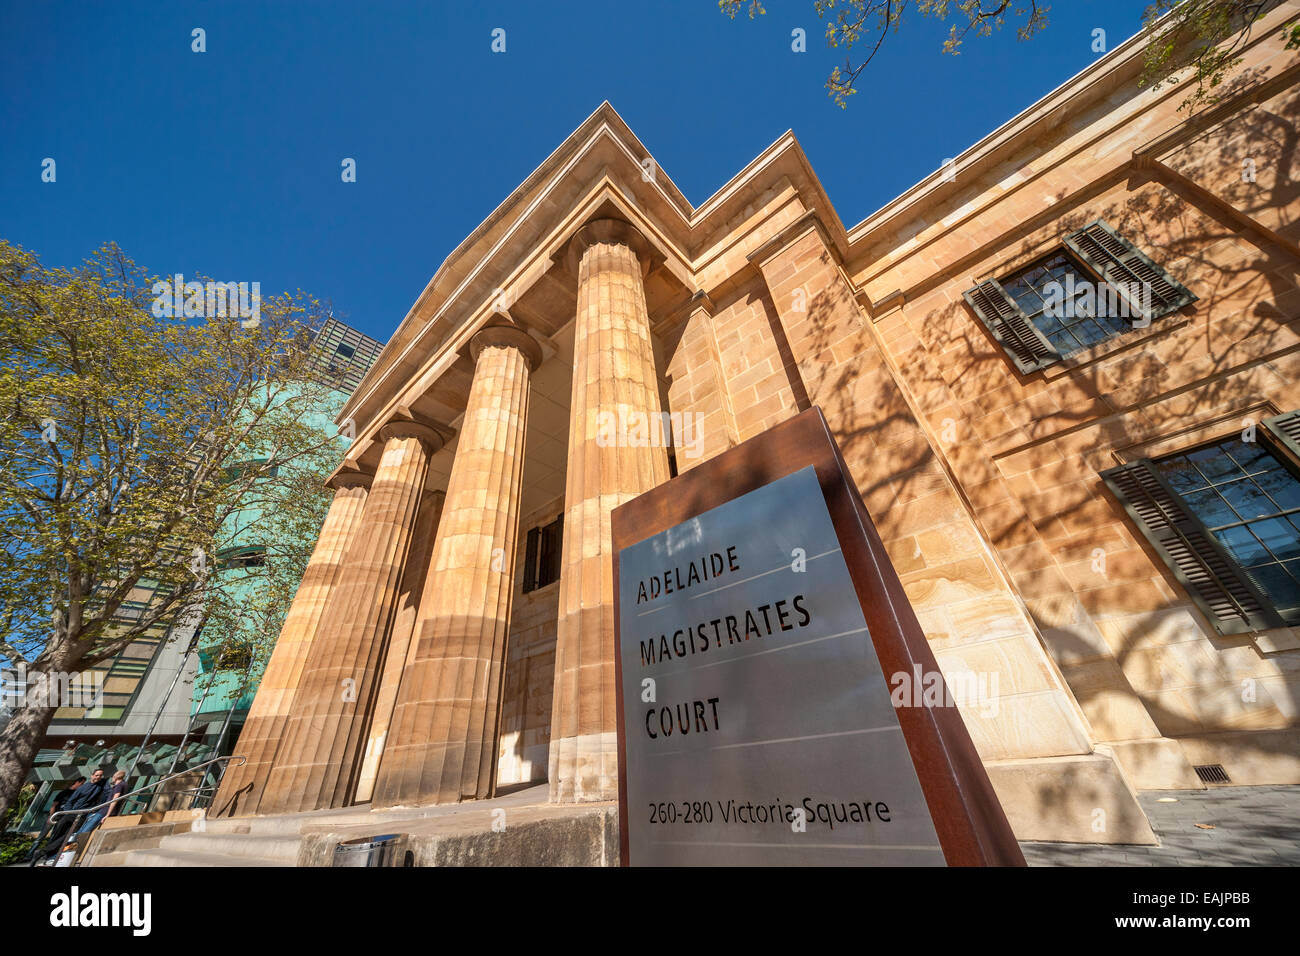 Magistrates Court of South Australia building in Adelaide Victoria Square. Facade; front entrance with sign. - Stock Image